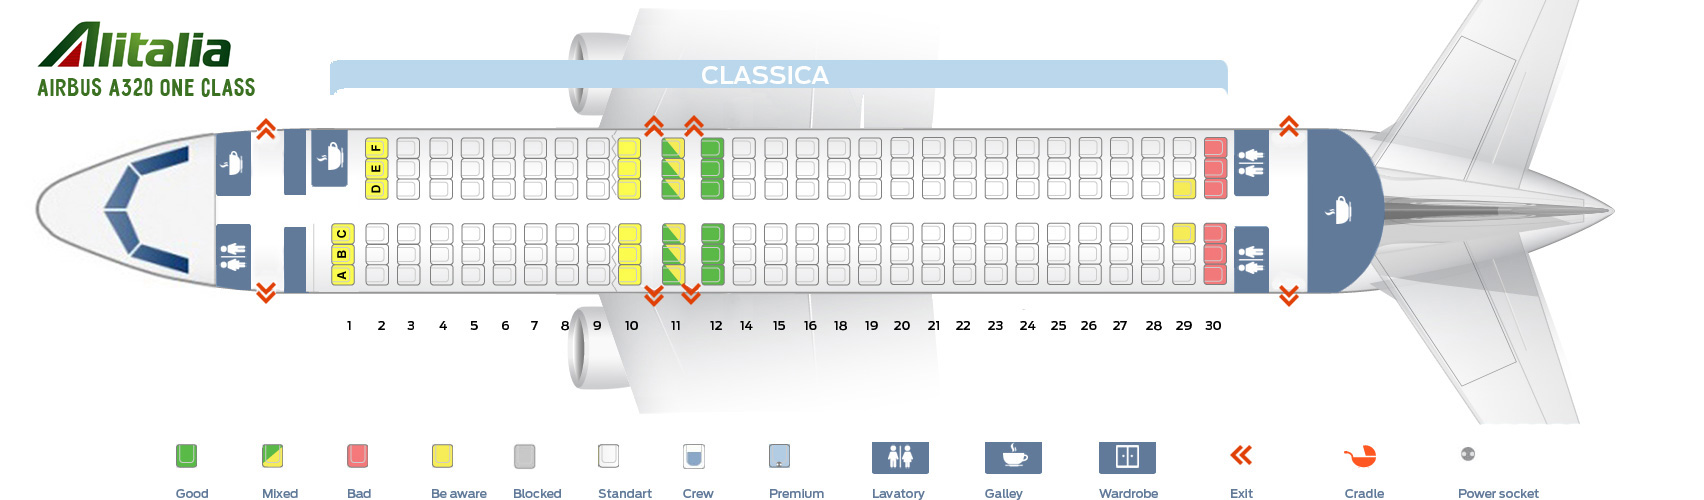 Seat Map Airbus A320 One Class Alitalia Airlines